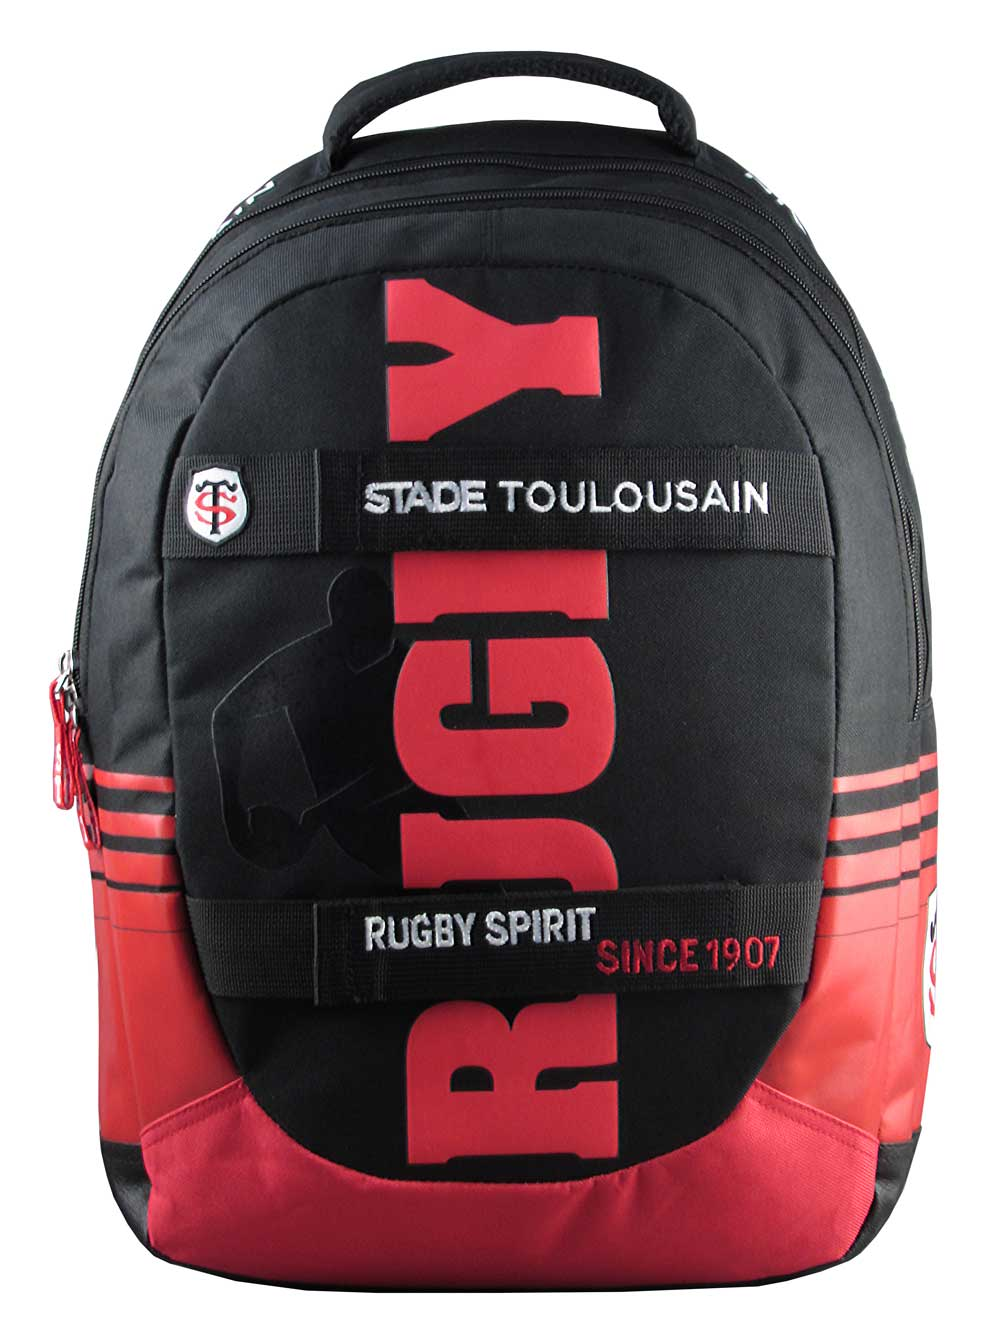 Sac a dos a roulette stade toulousain poker tournaments bc canada